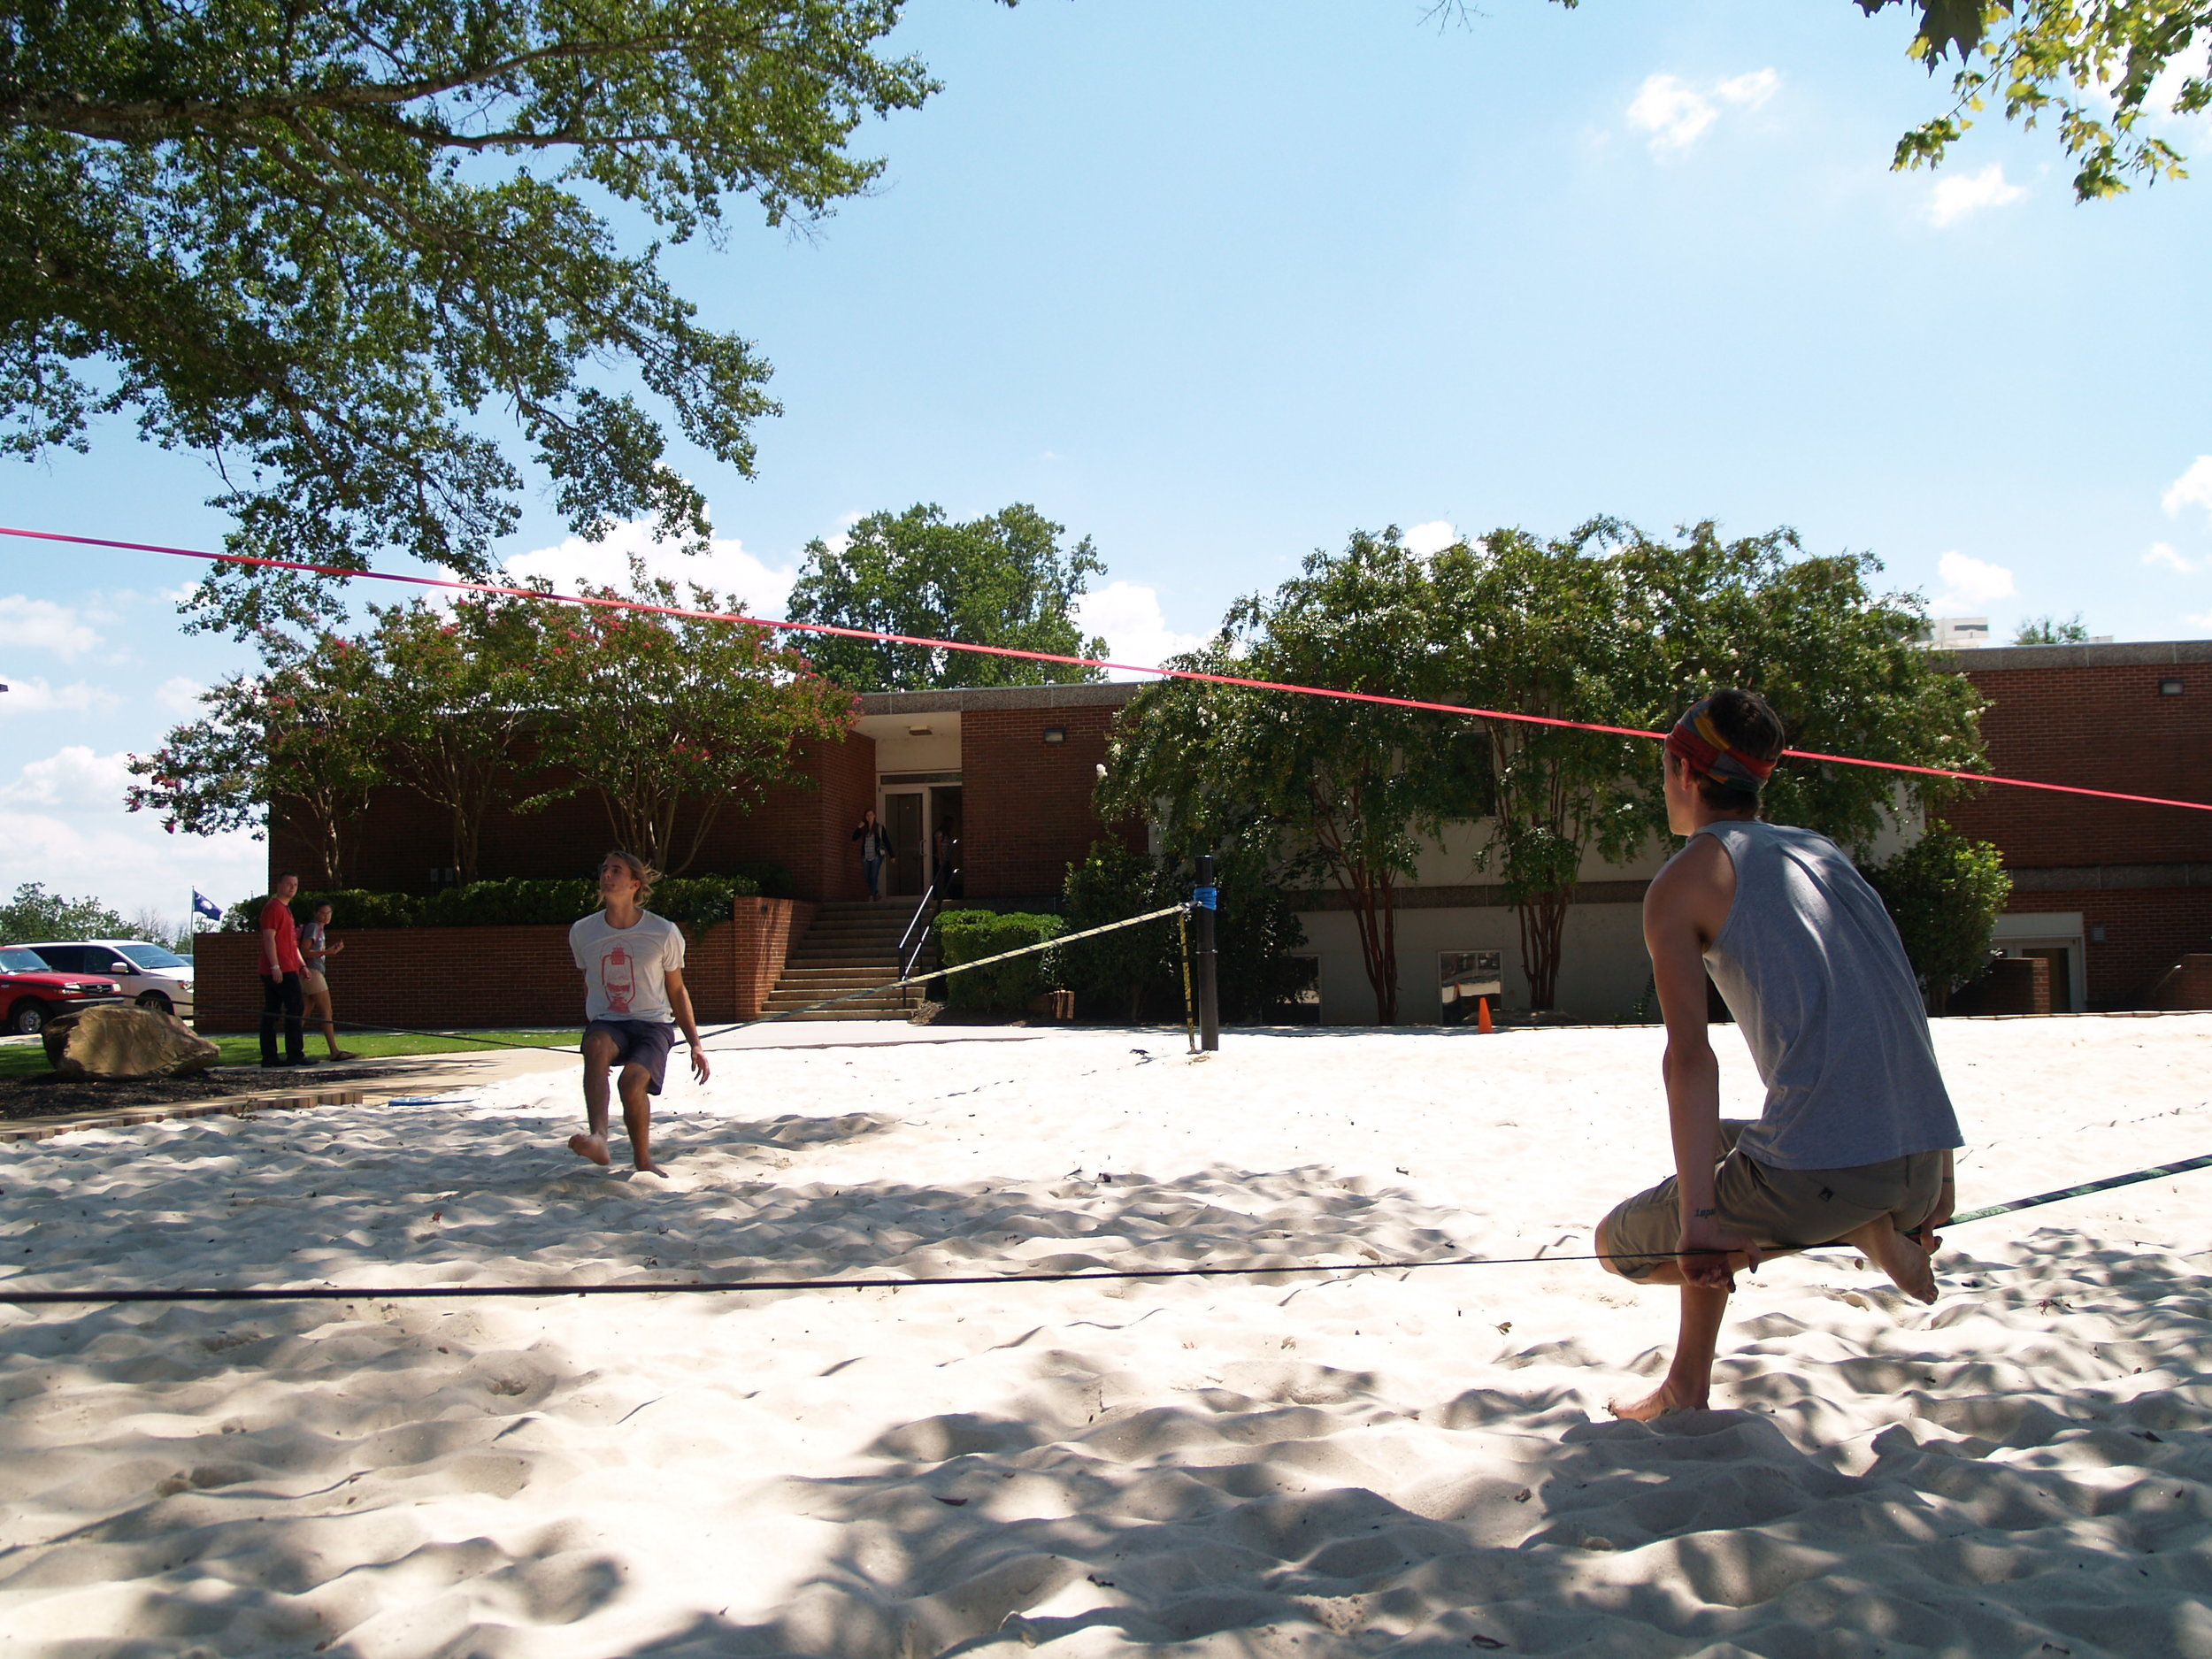 Students relax and enjoy the new slack lining area on a sunny afternoon.